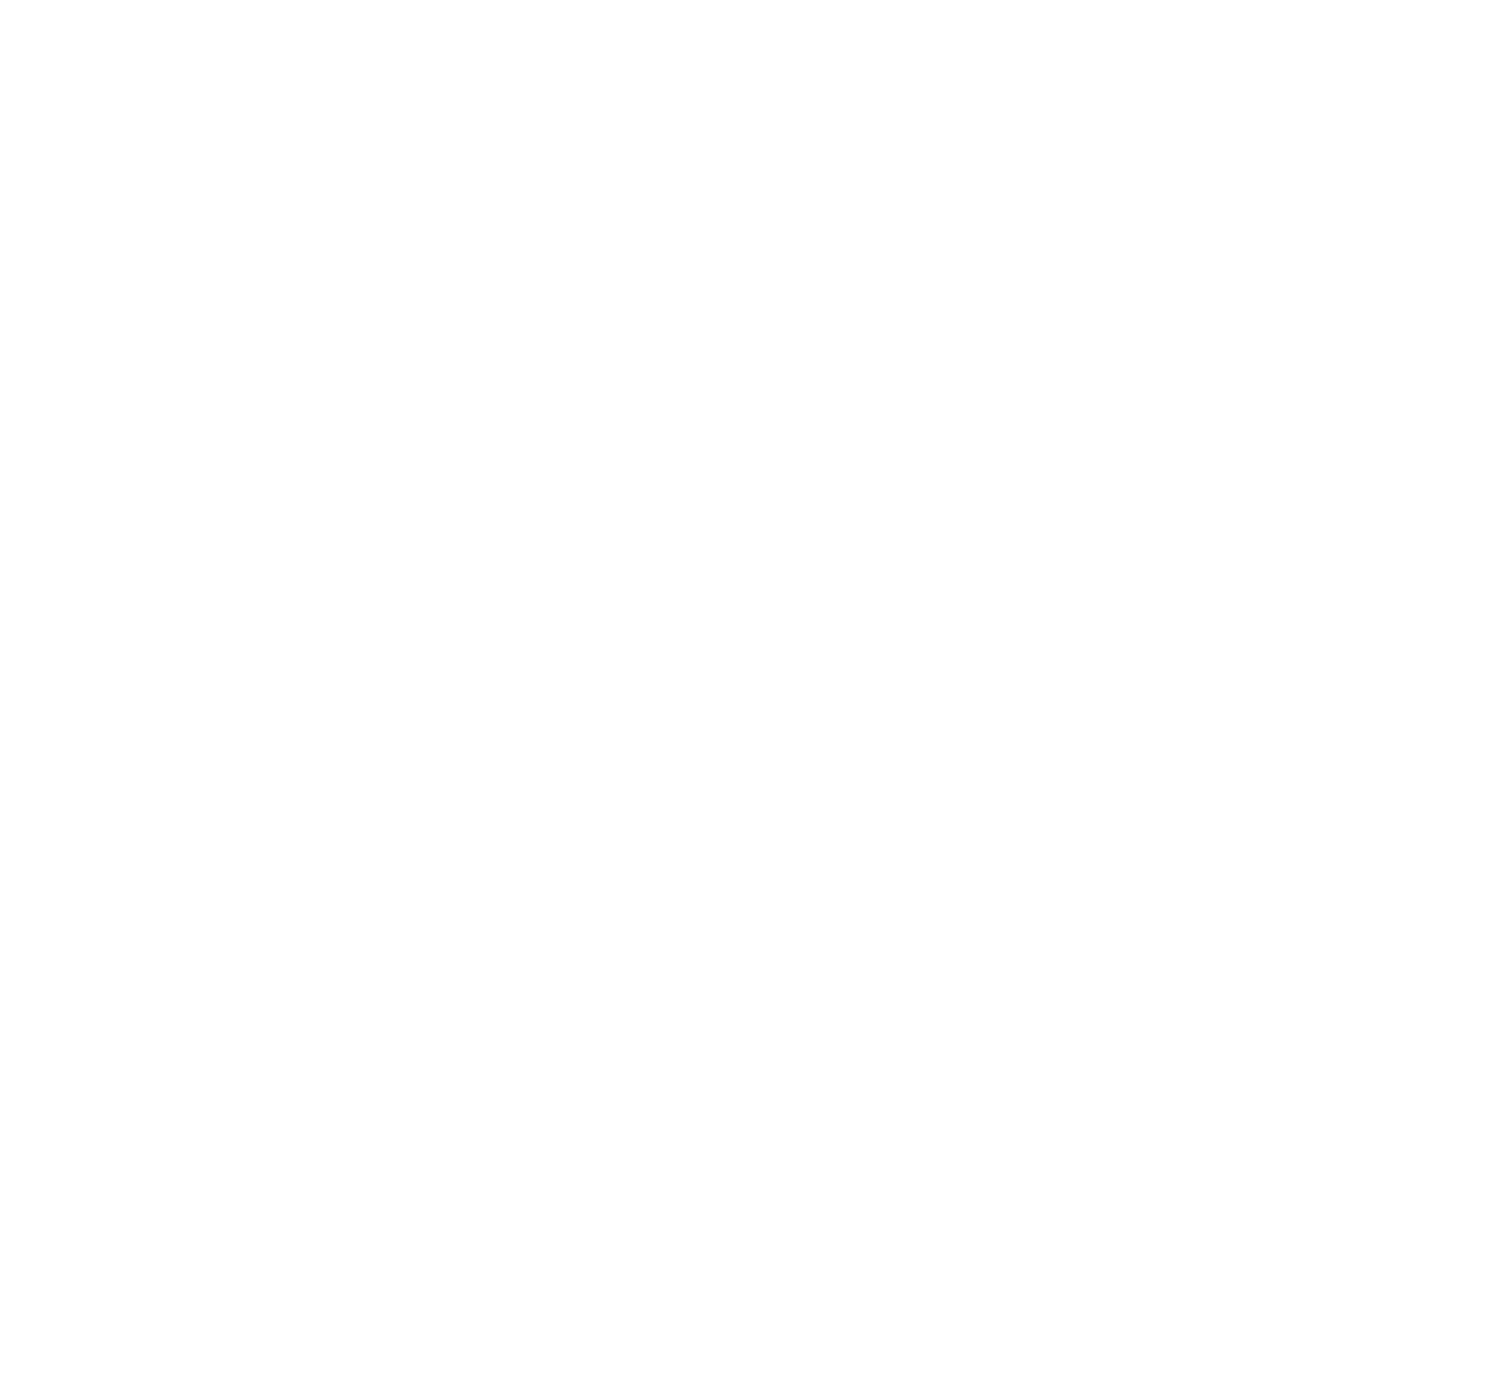 The Elsewhen Brainery